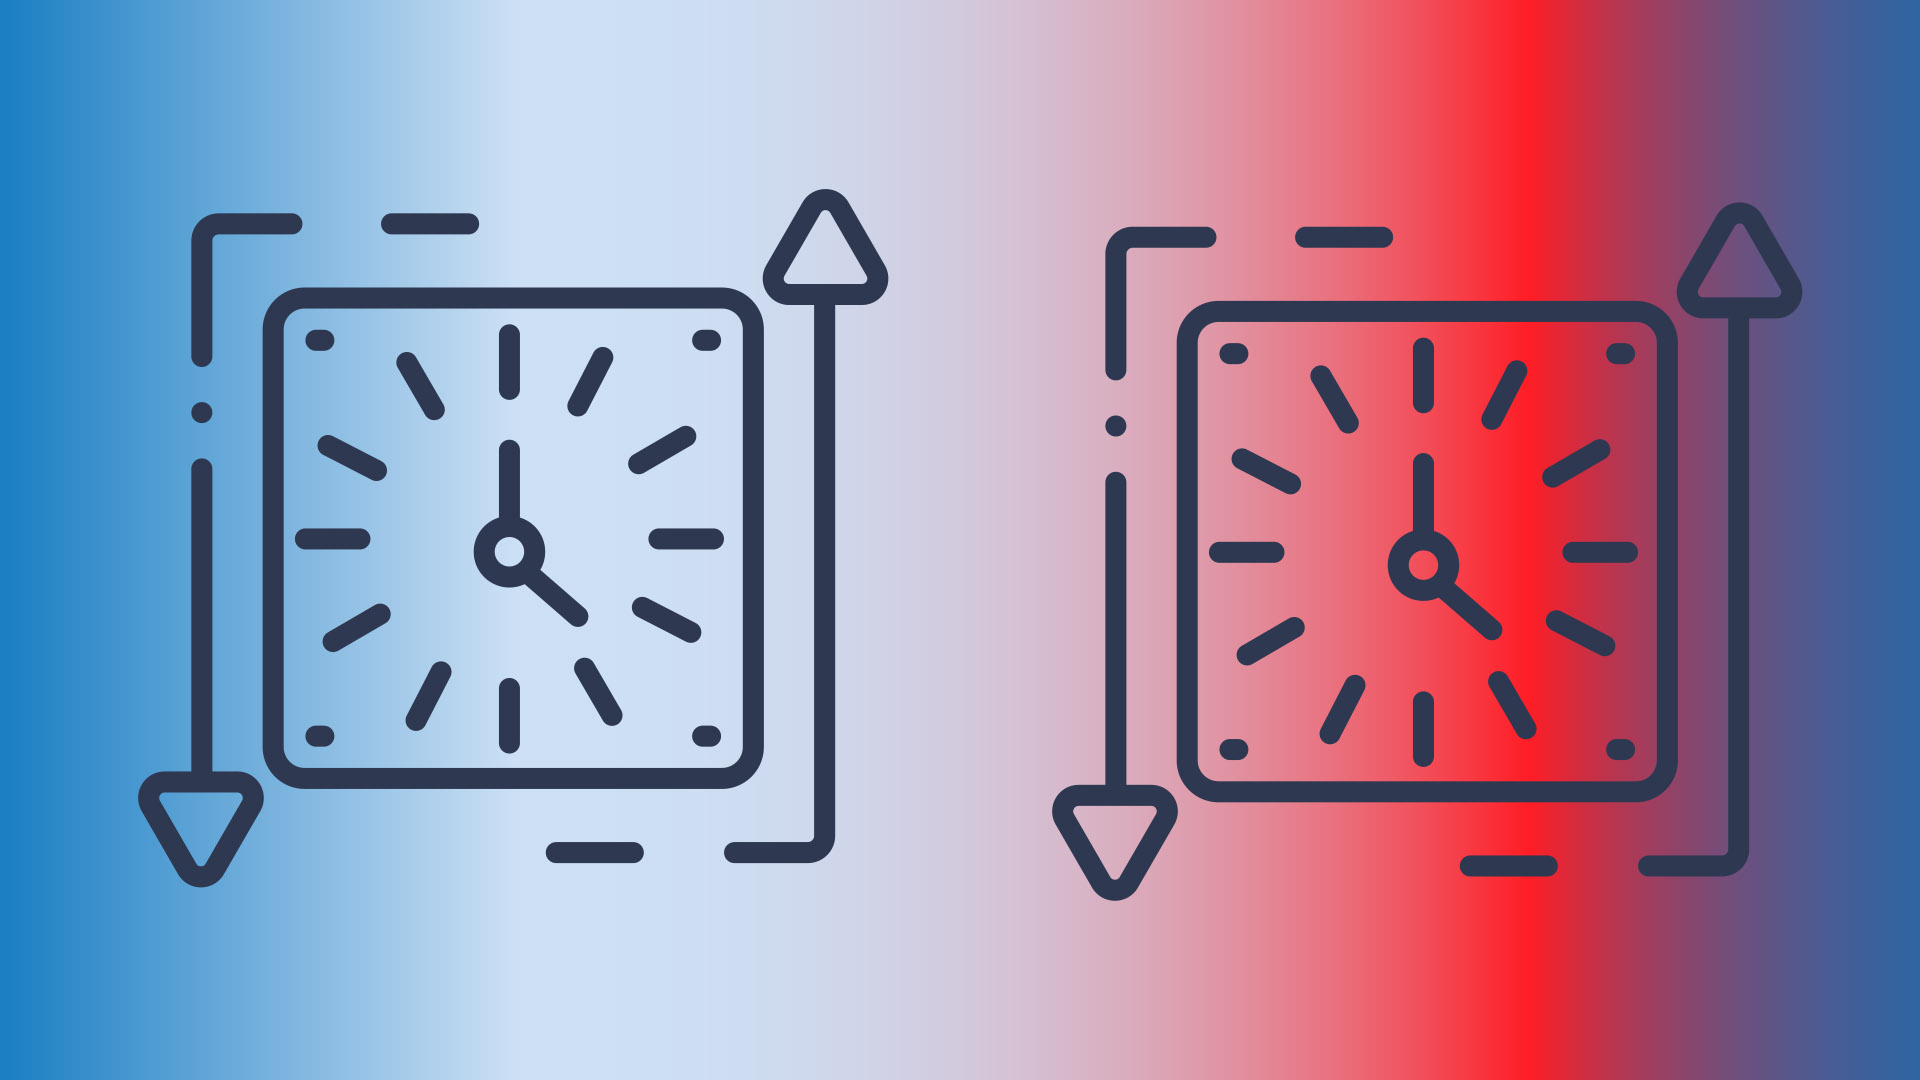 Red and blue gradient with clocks and arrows.